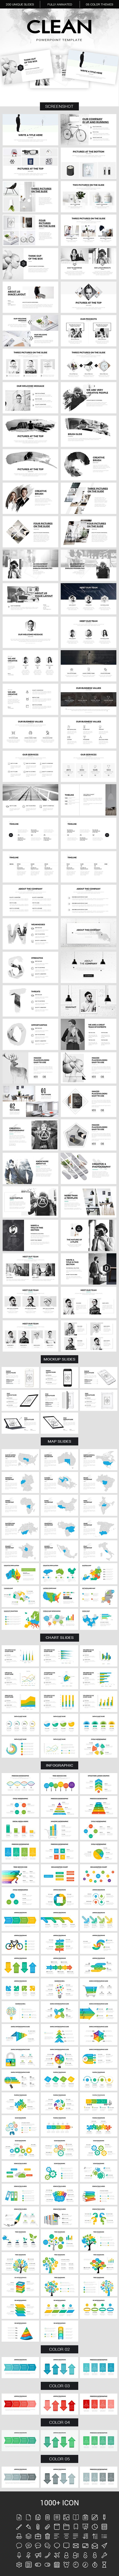 Clean Powerpoint Template. Download here…